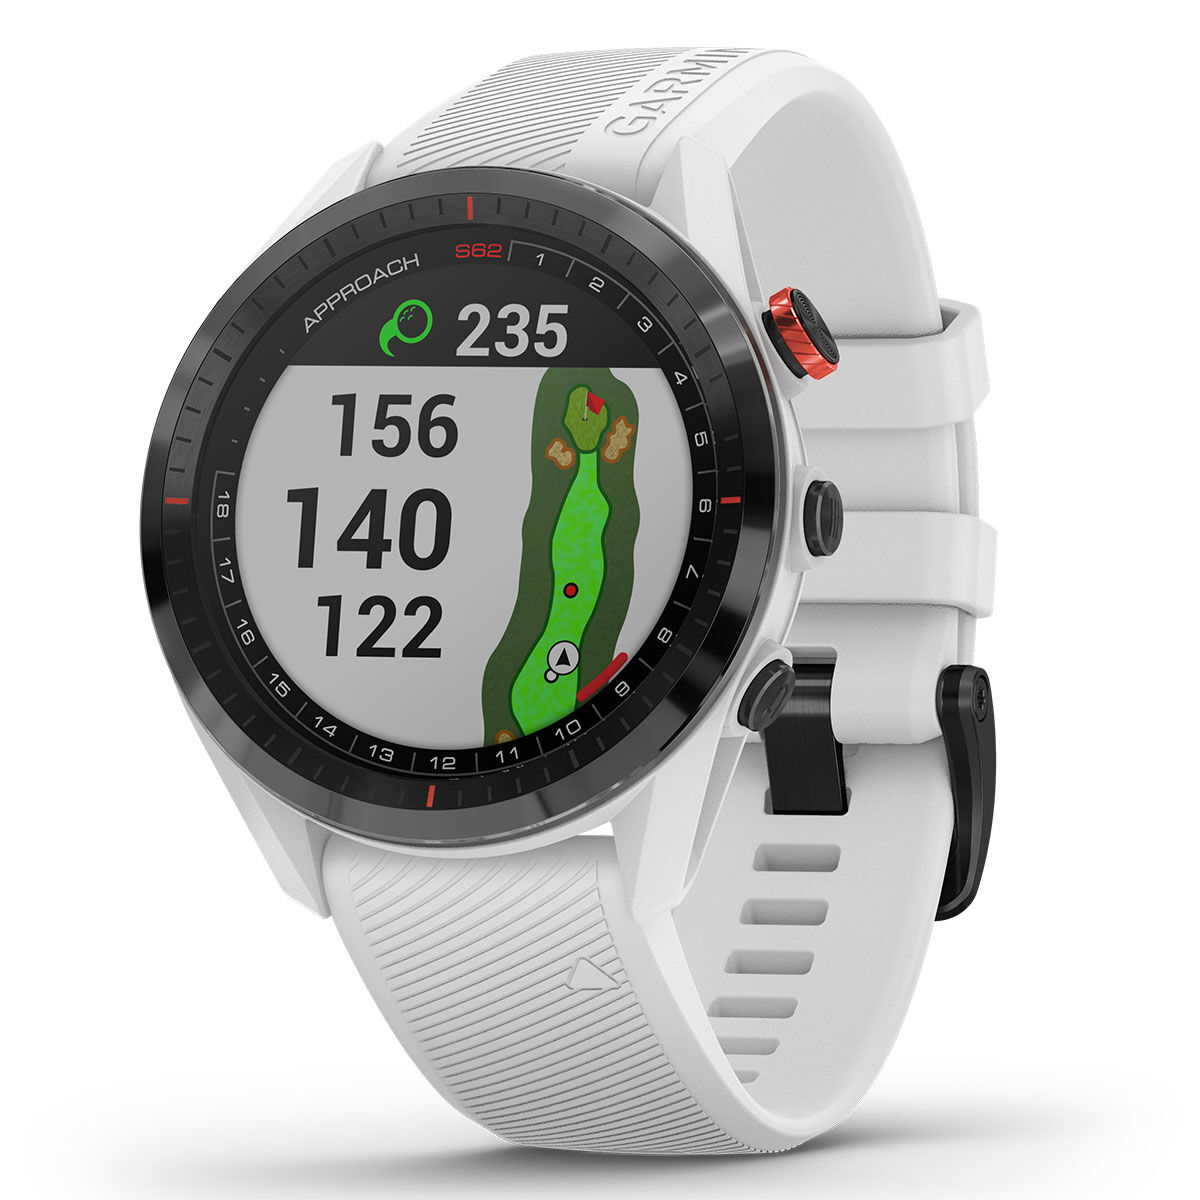 Garmin Approach S62 Golf GPS Watch, Male, White